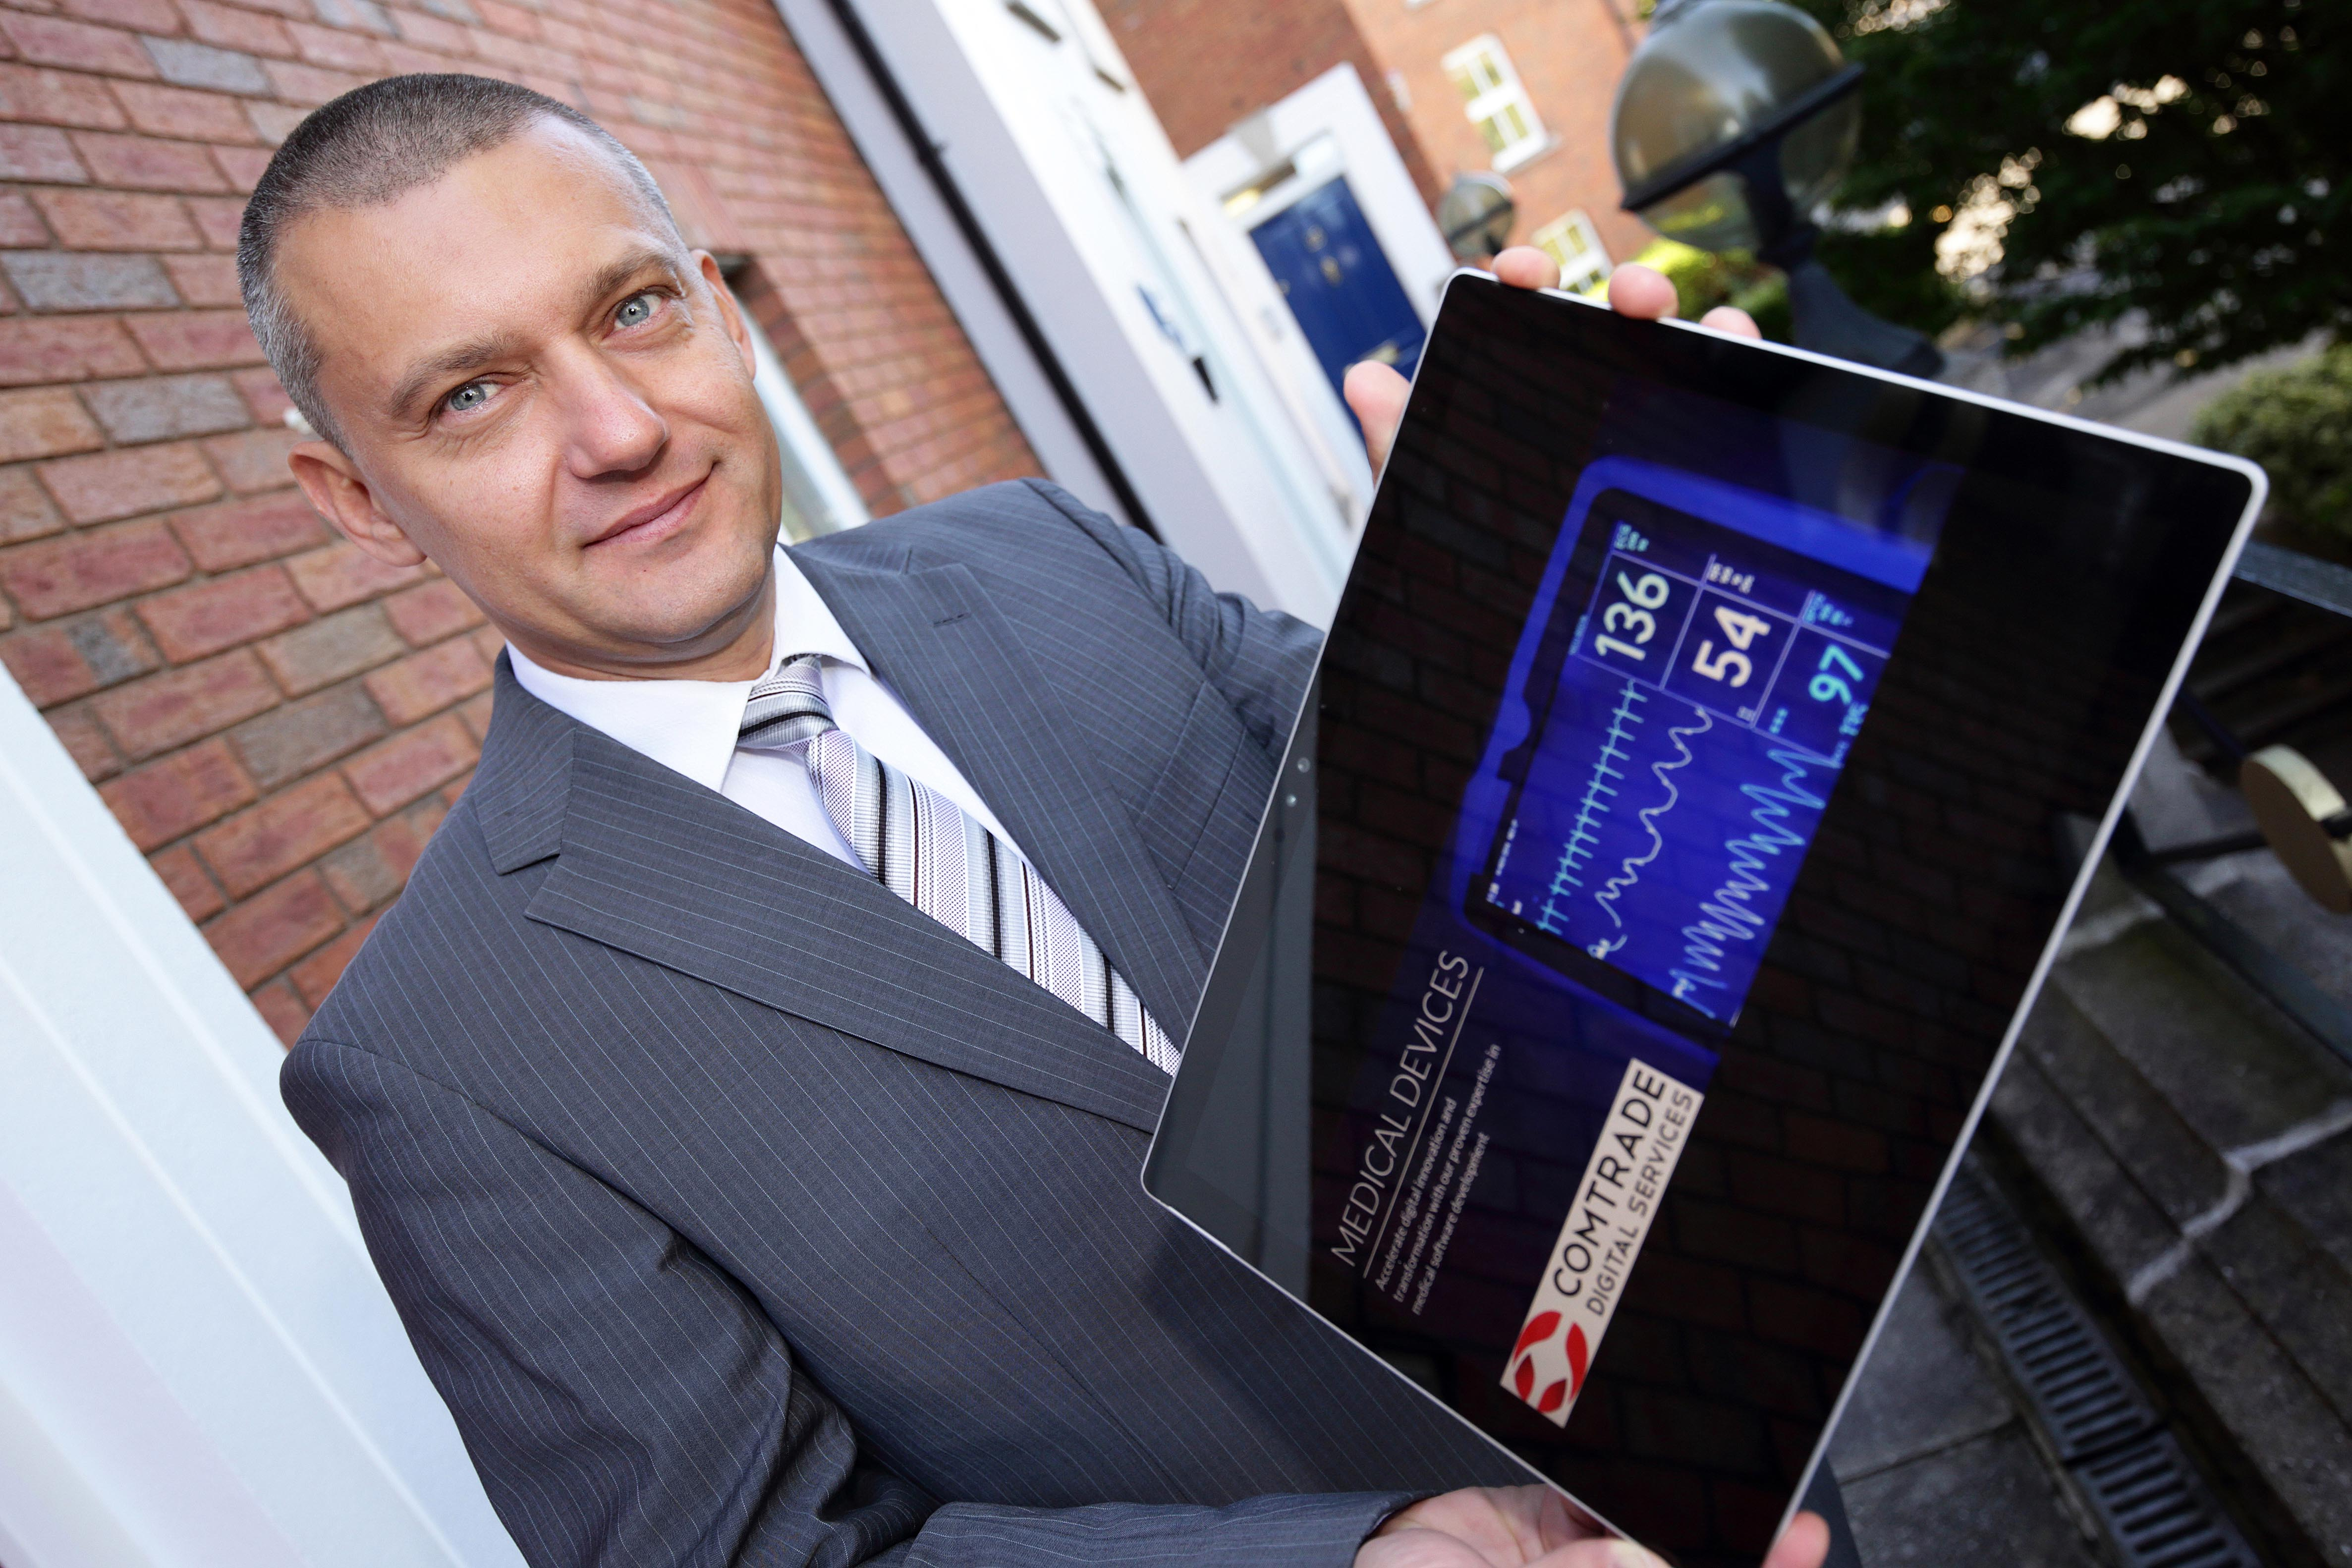 Medical software certification sees Comtrade target 25% growth